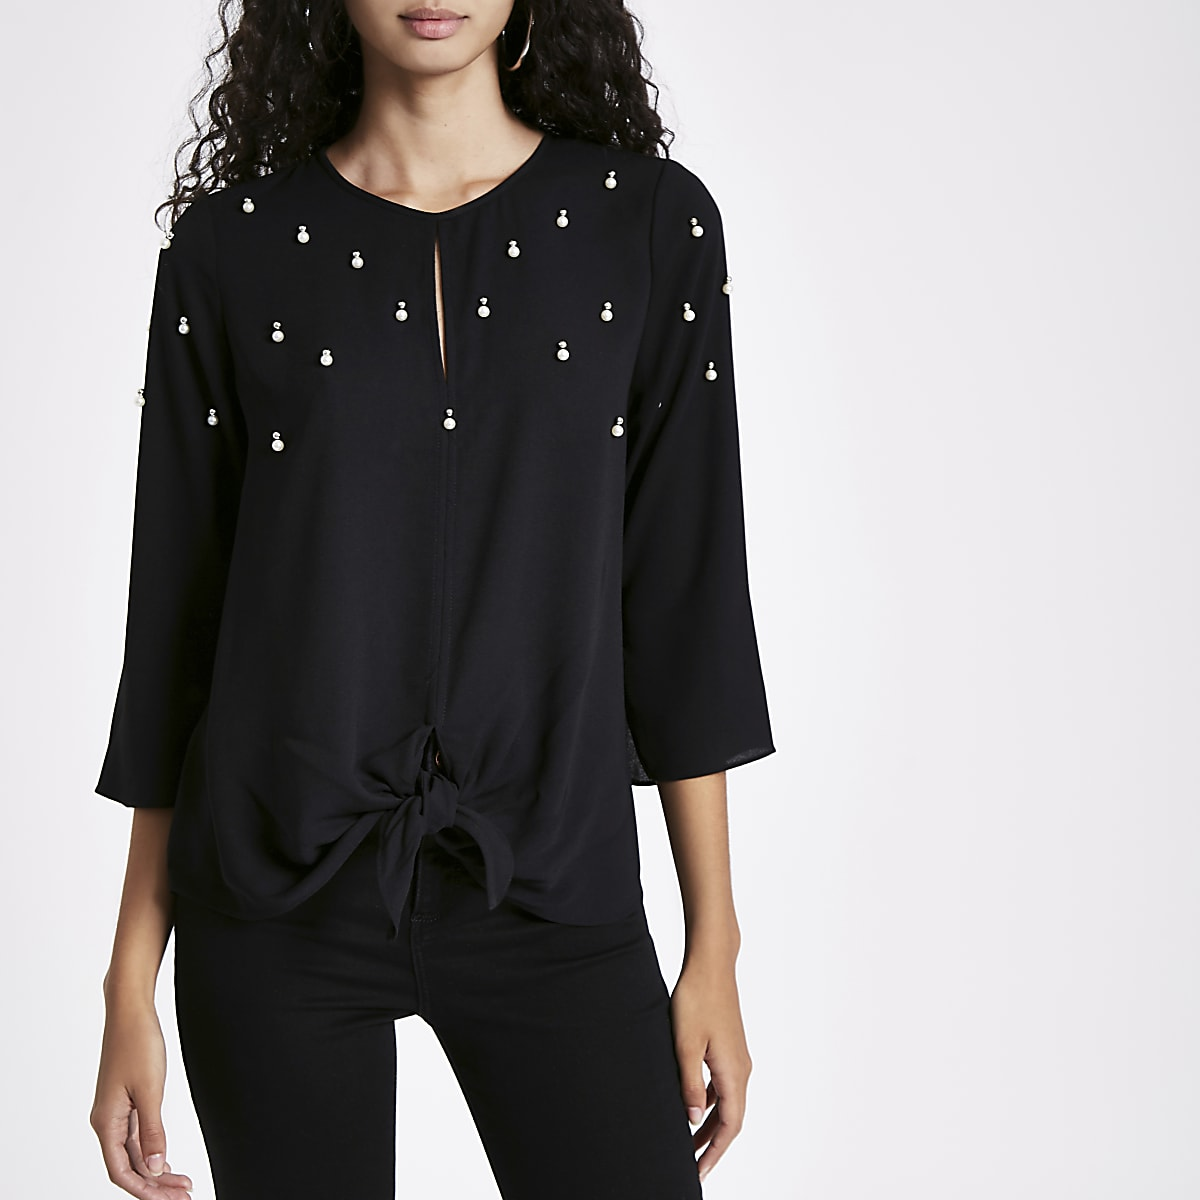 Black cluster embellished tie front top